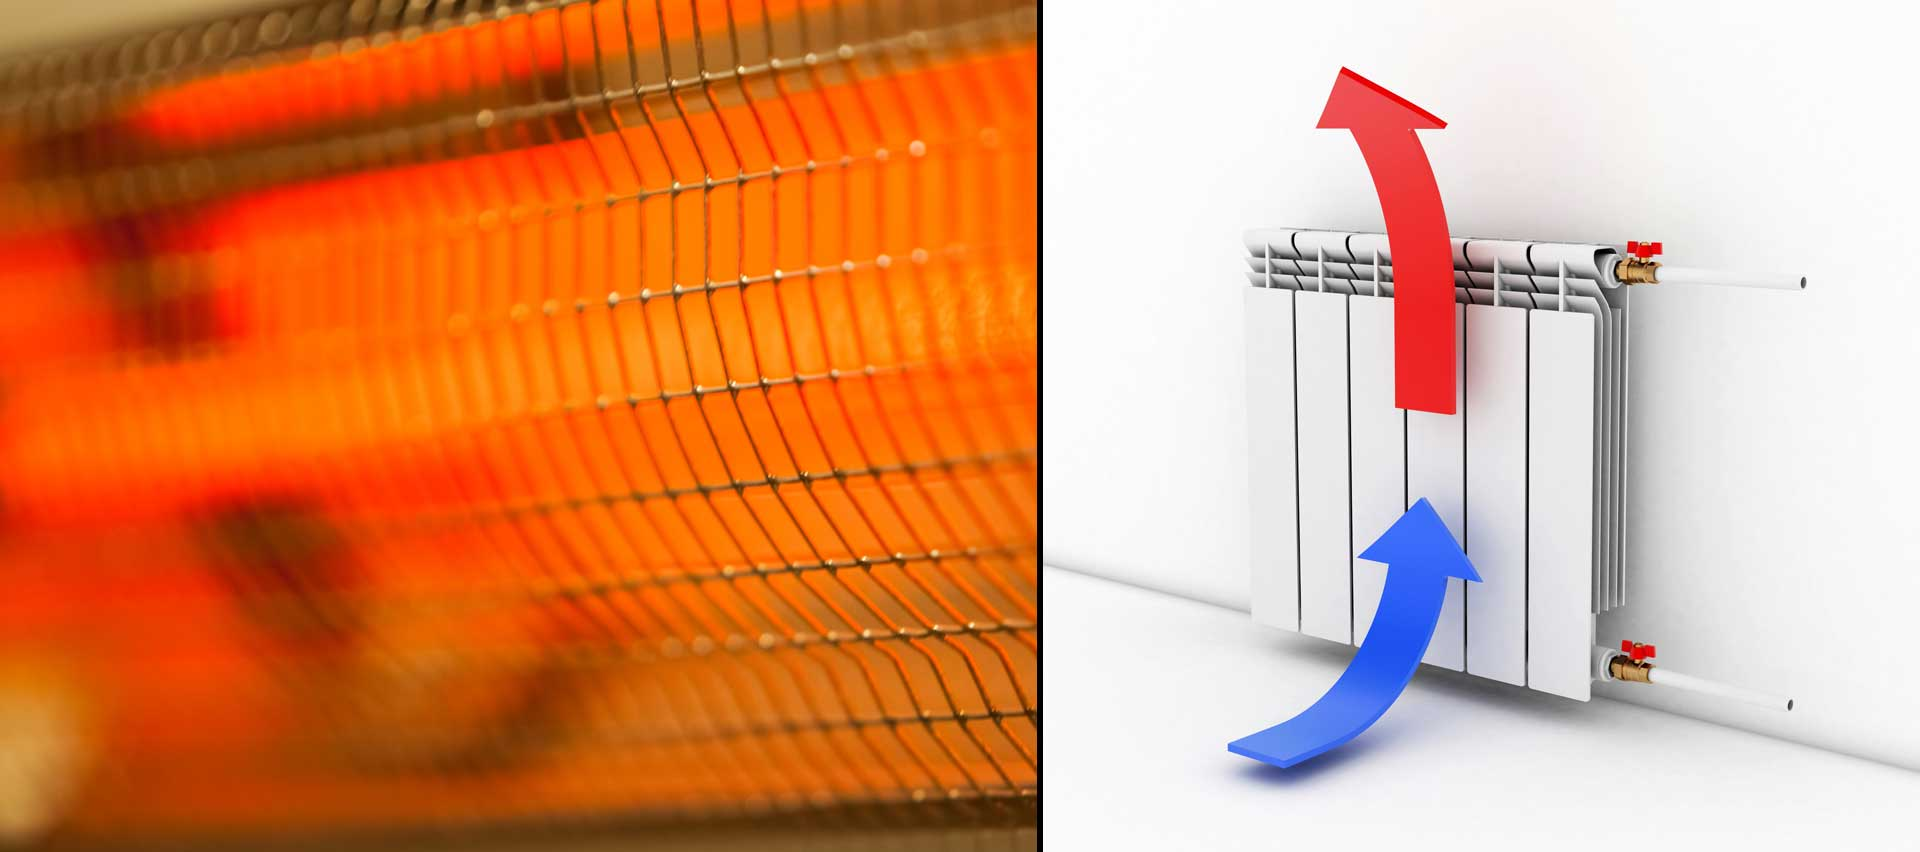 Electric Infrared Heater Vs. Conventional Heaters